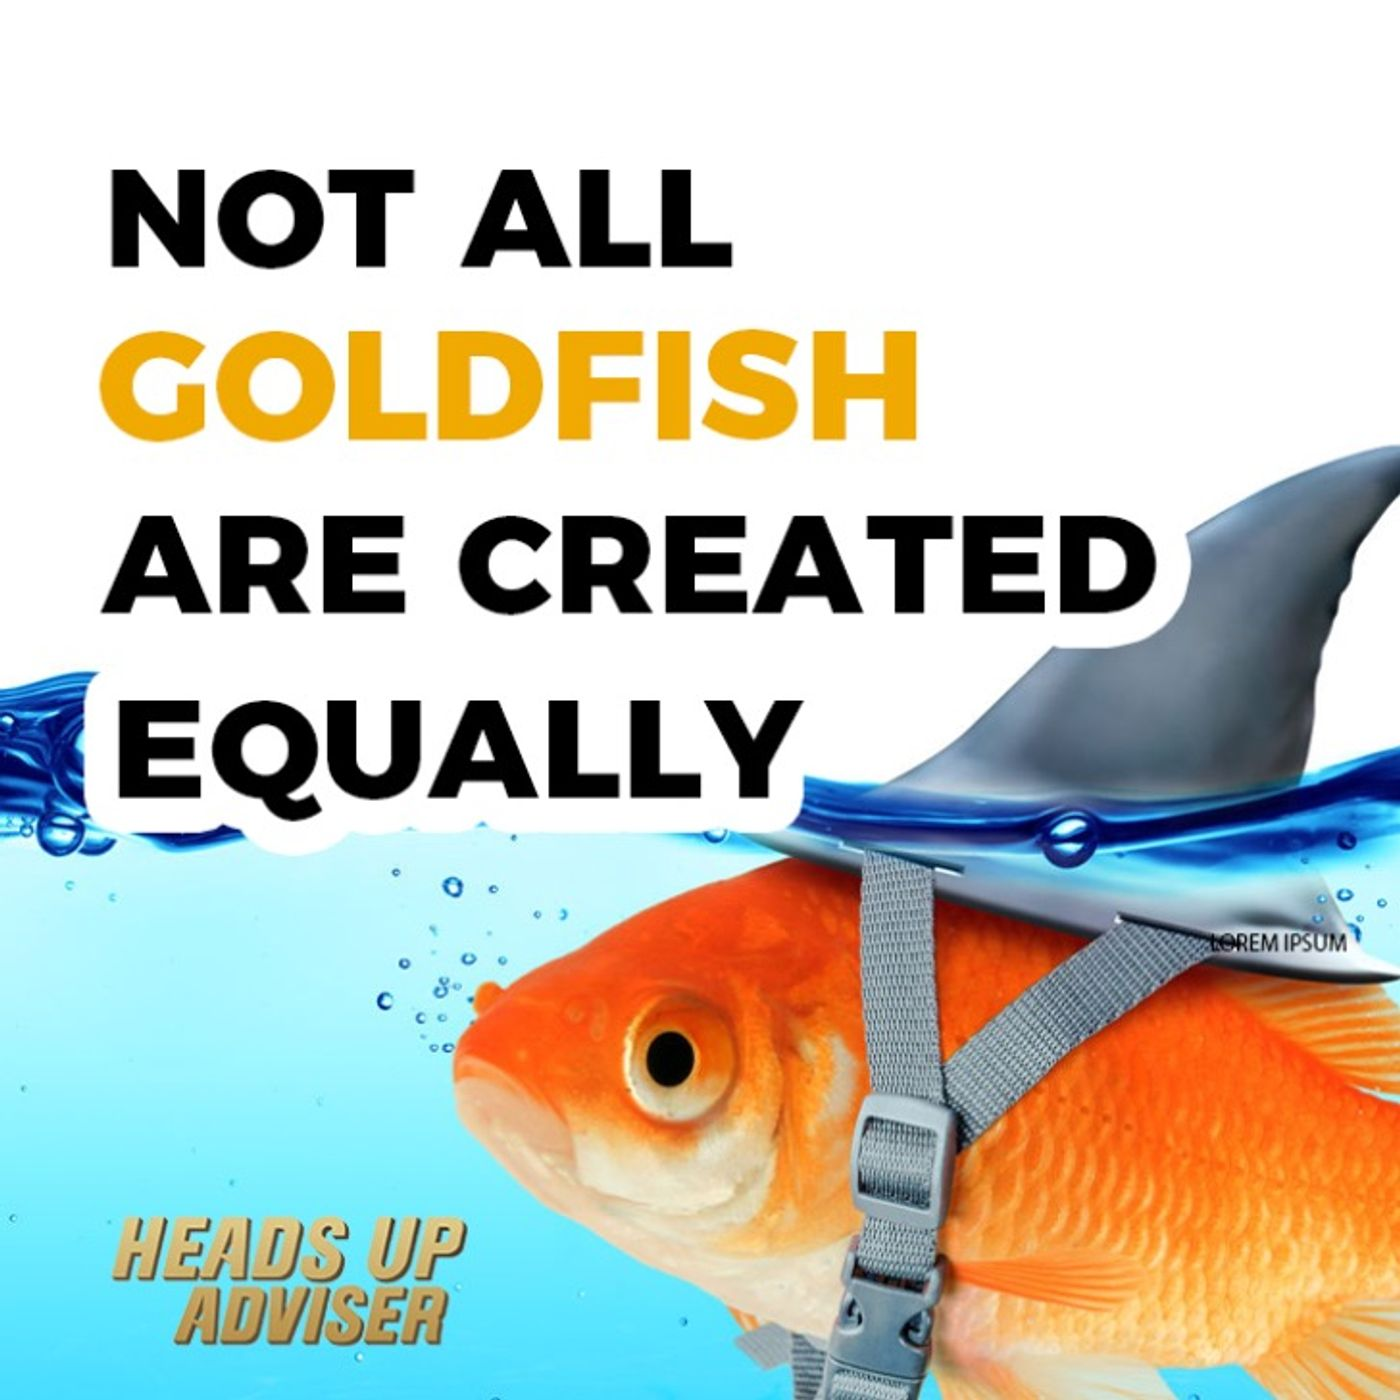 Not All Goldfish Are Created Equally